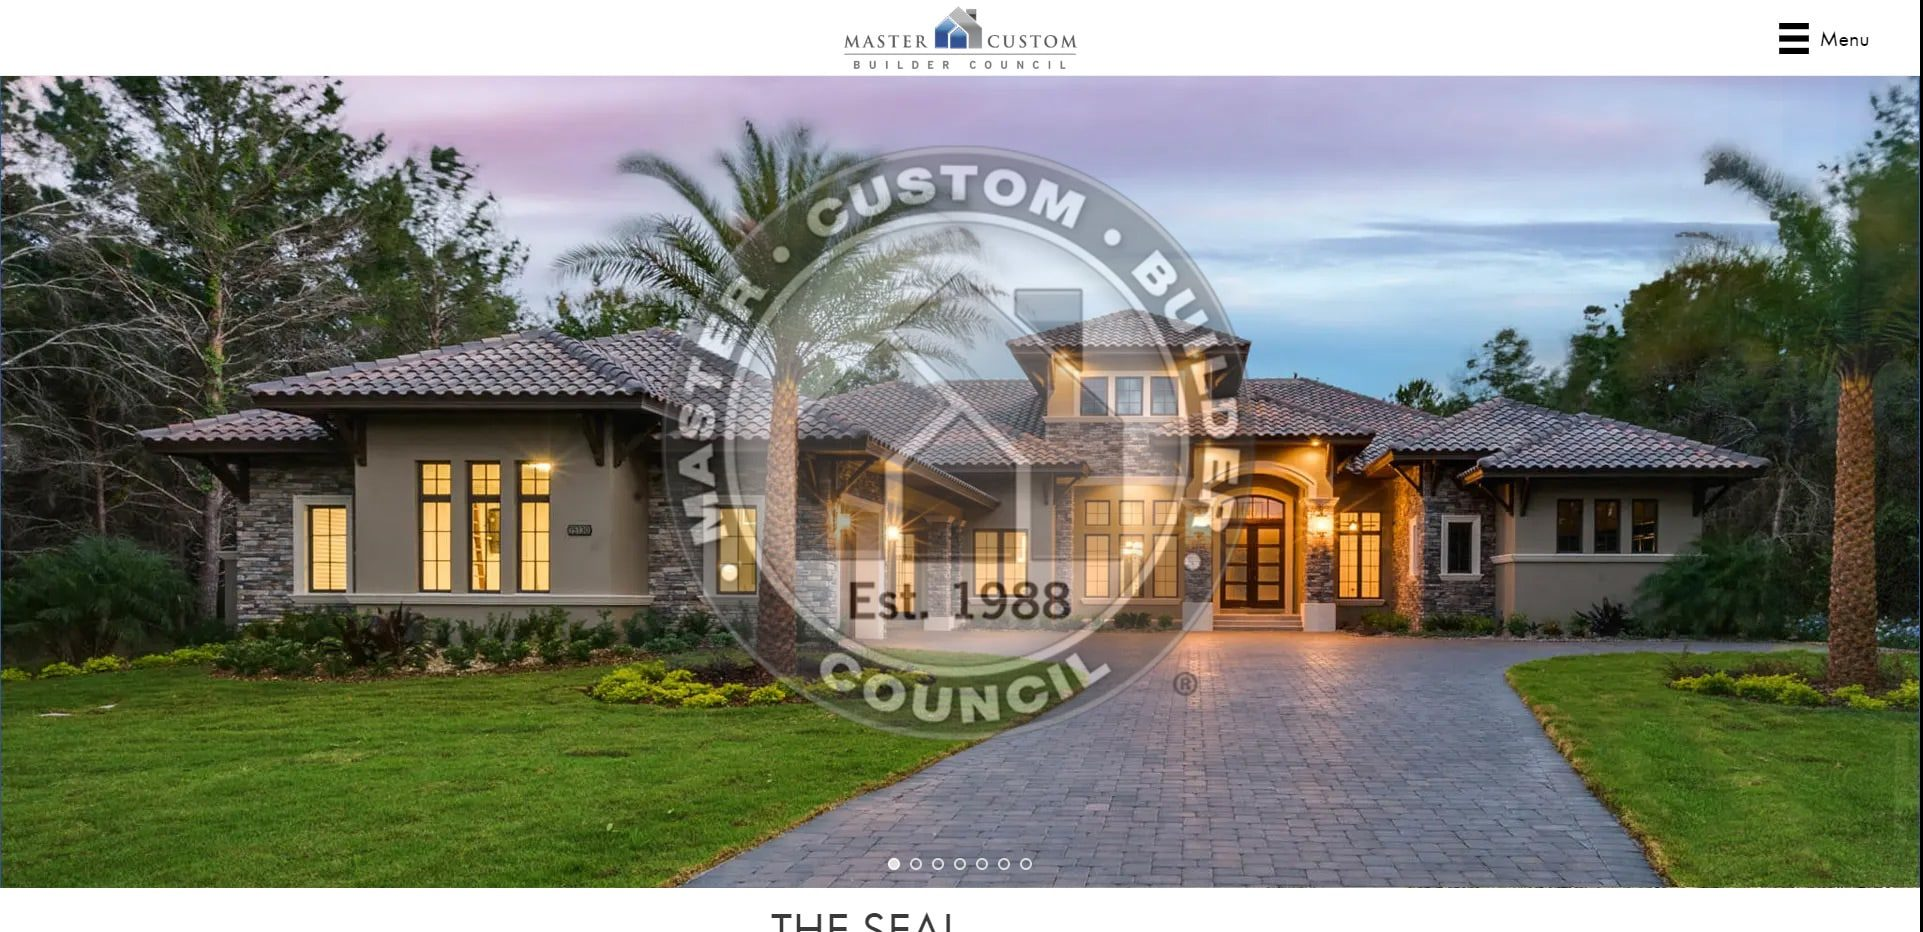 After redesign Photo of Master Custom Builder Council Project